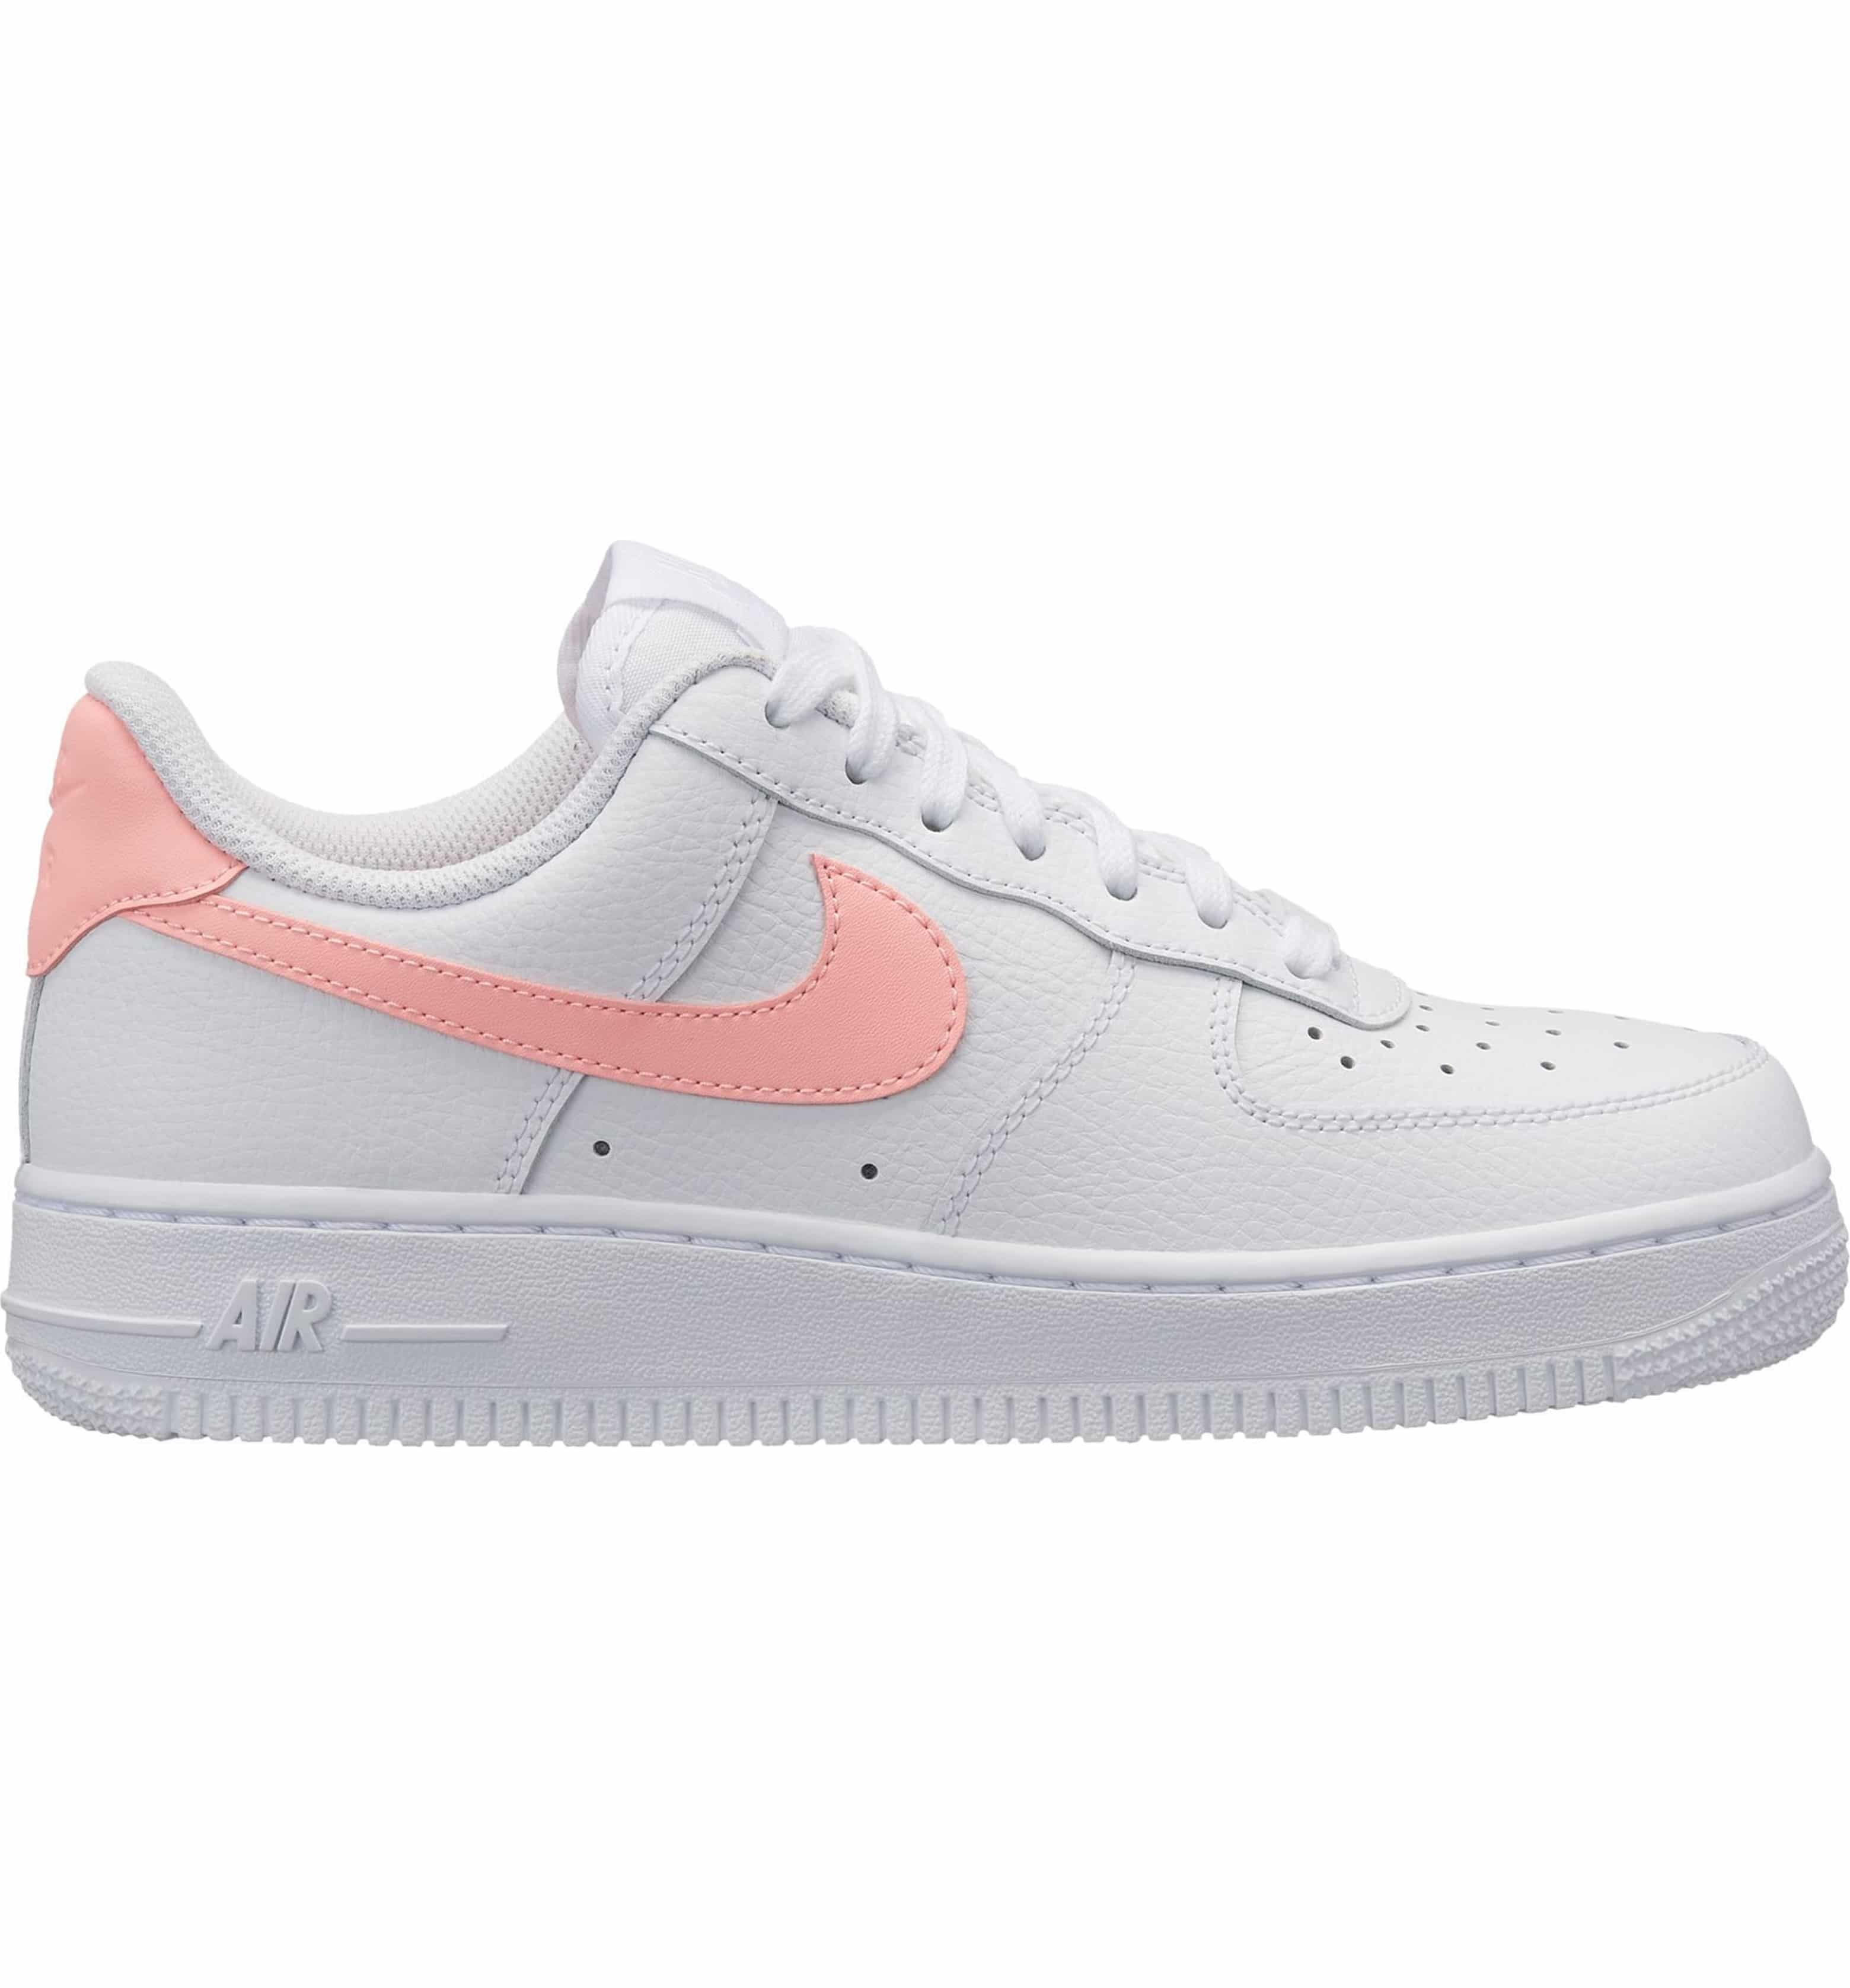 625bf88f88fe4 Air Force 1 '07 Sneaker, Main, color, WHITE/ ORACLE PINK-WHITE ...